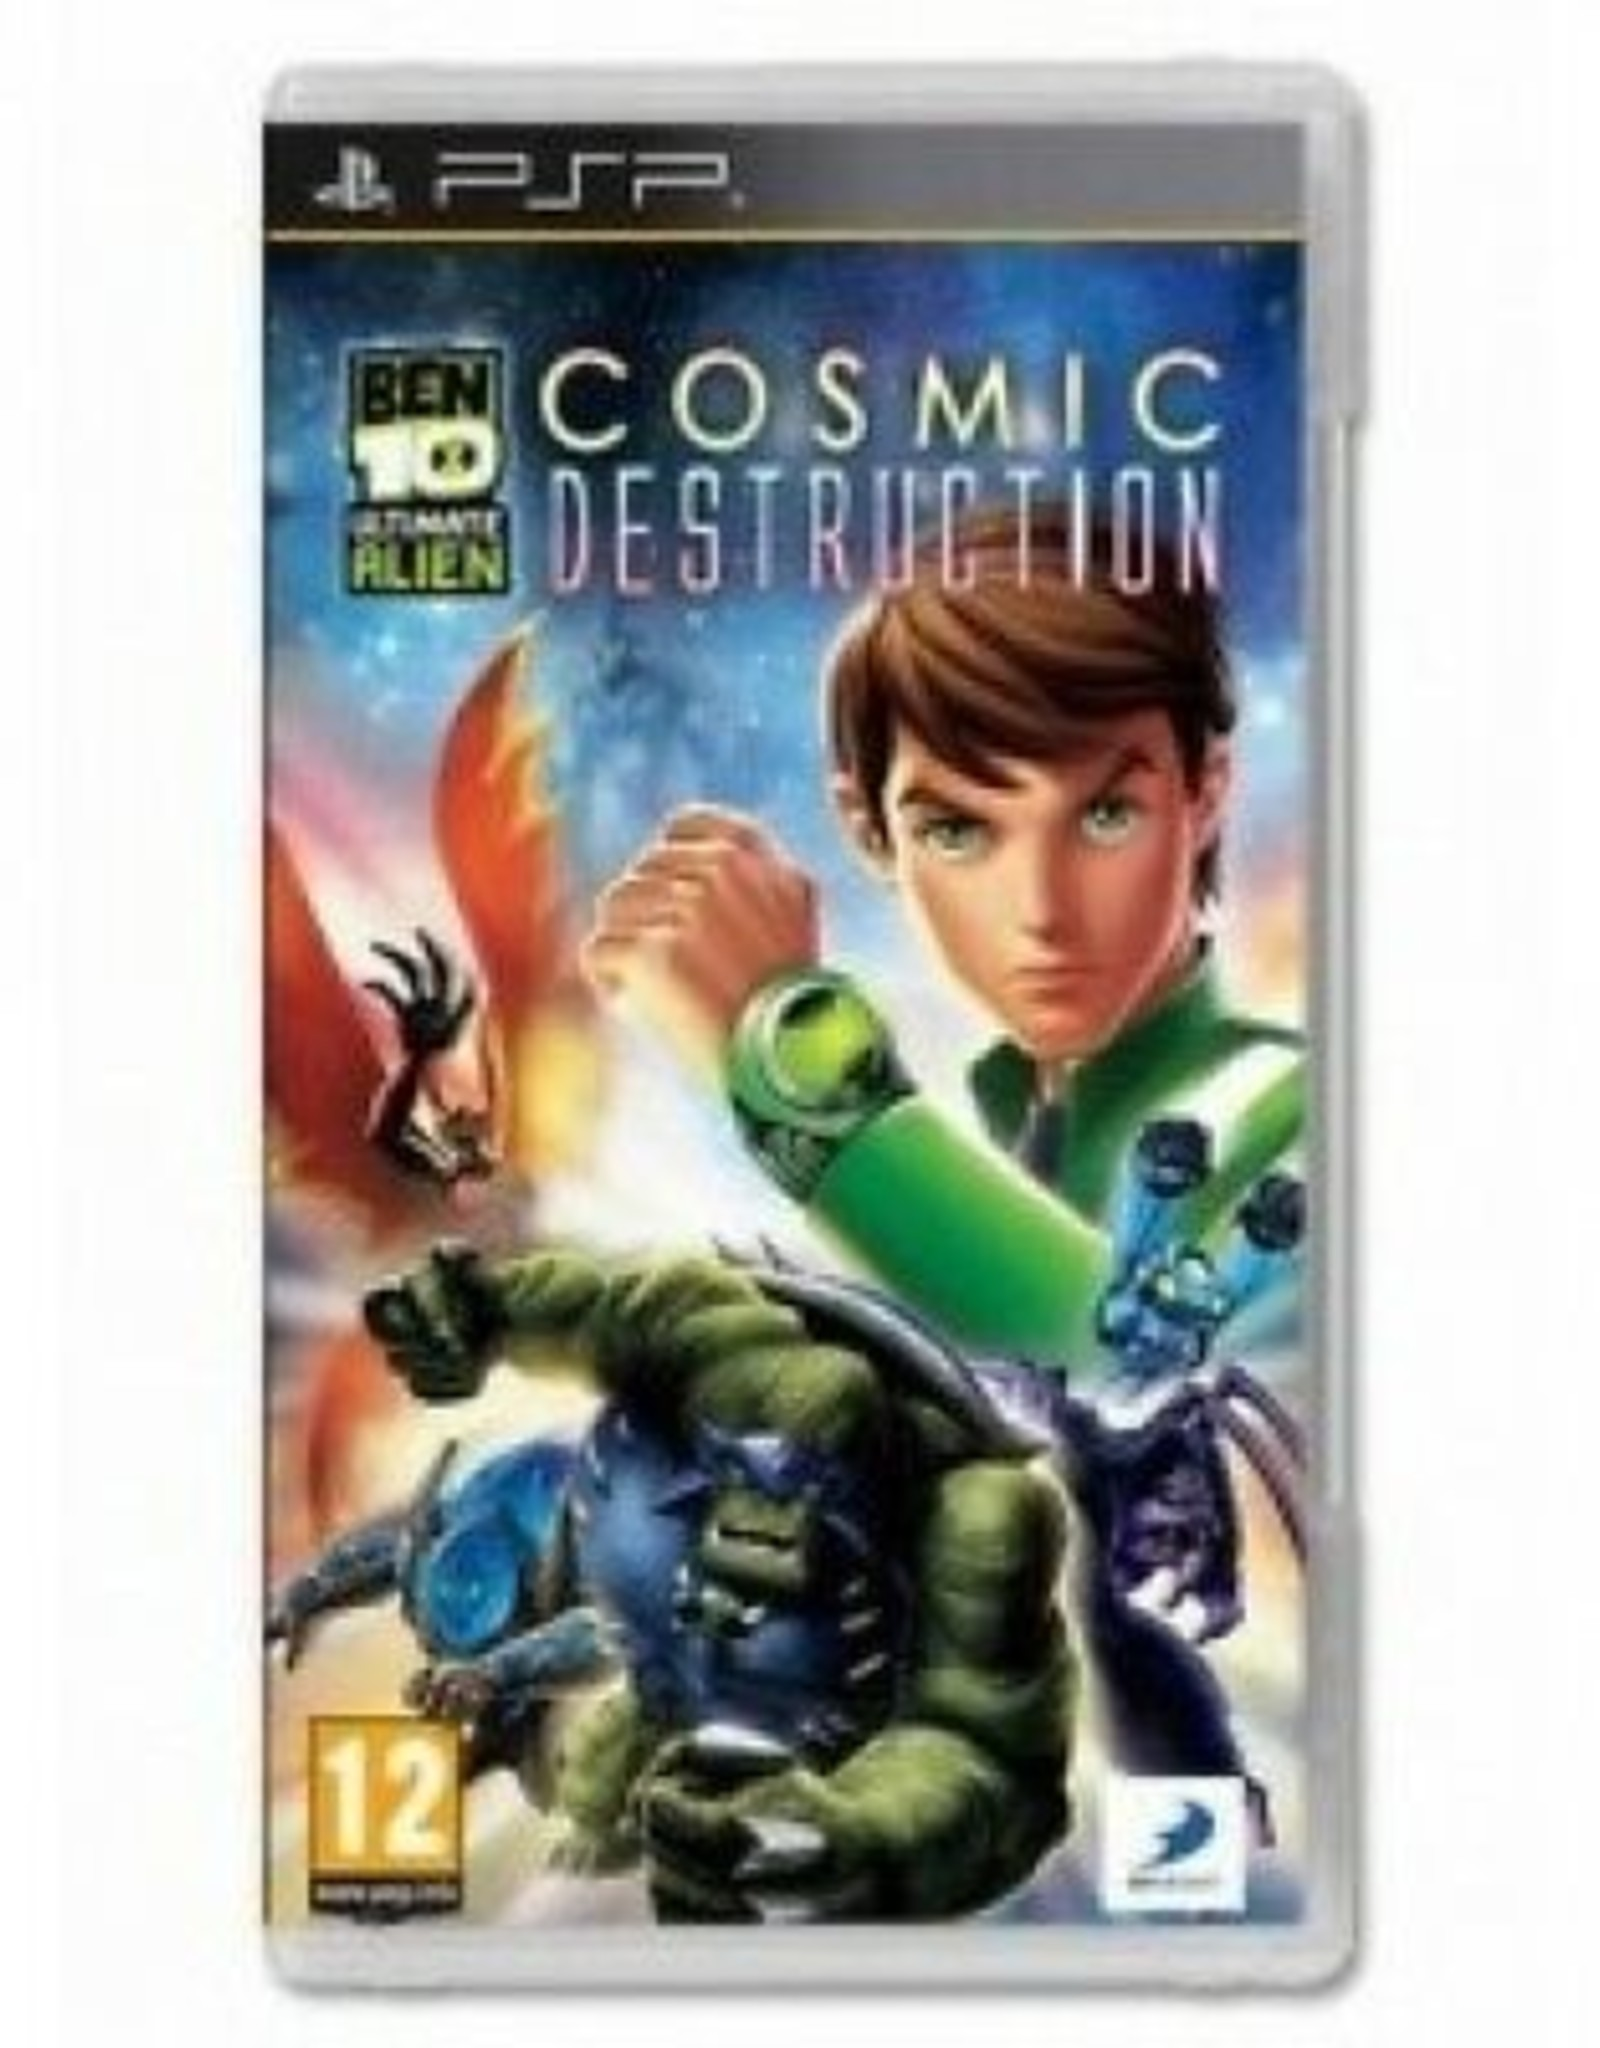 Ben 10 Ultimate Alien: Cosmic Destruction - PSP PrePlayed